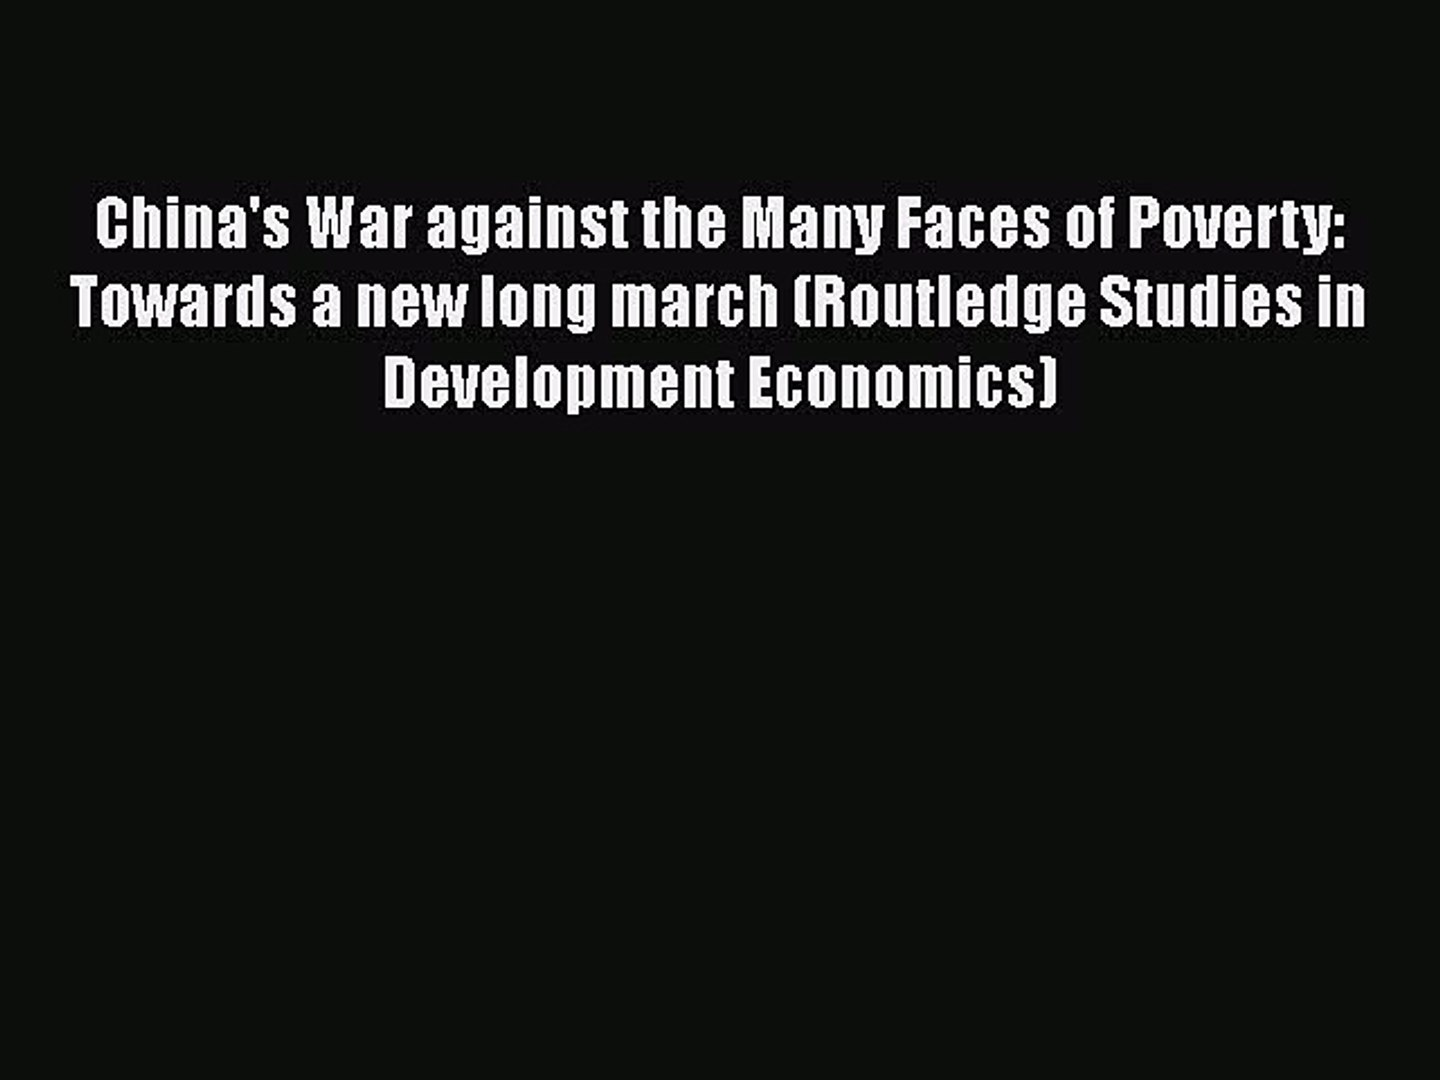 Download China's War against the Many Faces of Poverty: Towards a new long march (Routledge